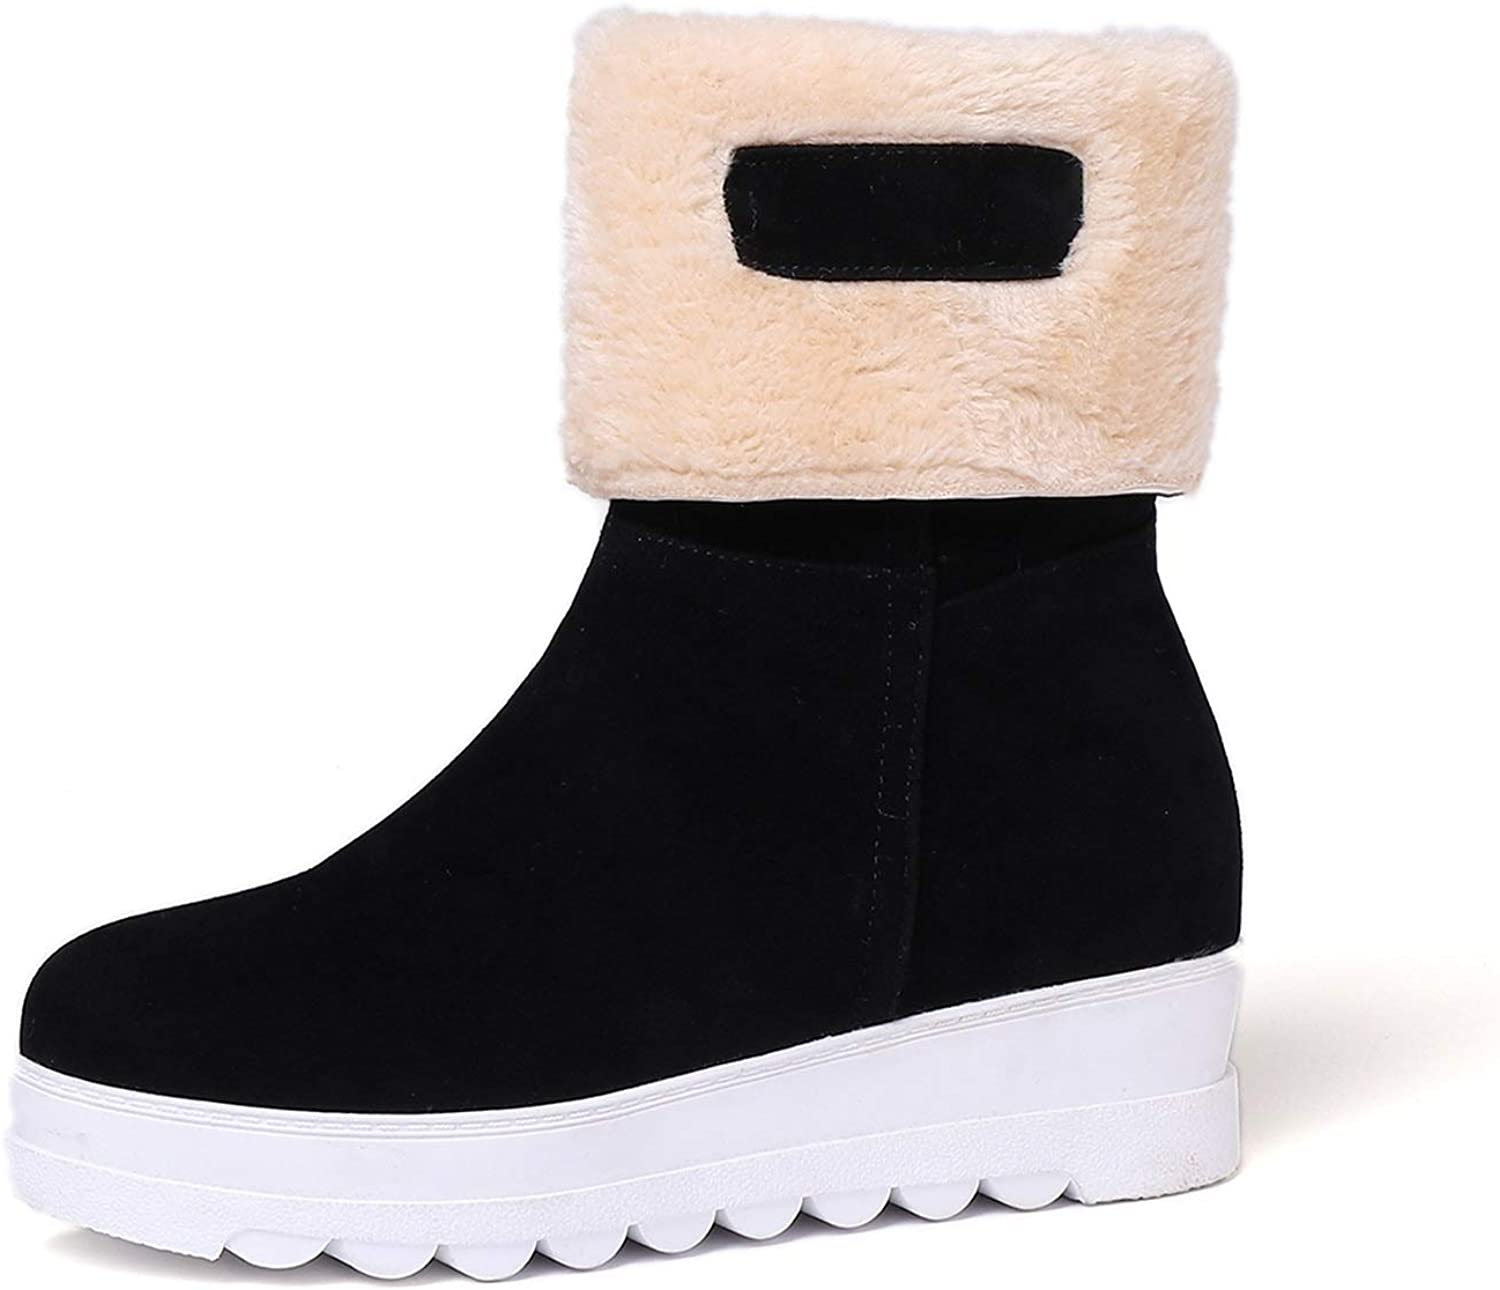 Women's Booties, Flat Increase Within Academy Martin Boots Ladies Fall Winter Scrub Middle Tube Fashion Snow Boots (color   A, Size   38)